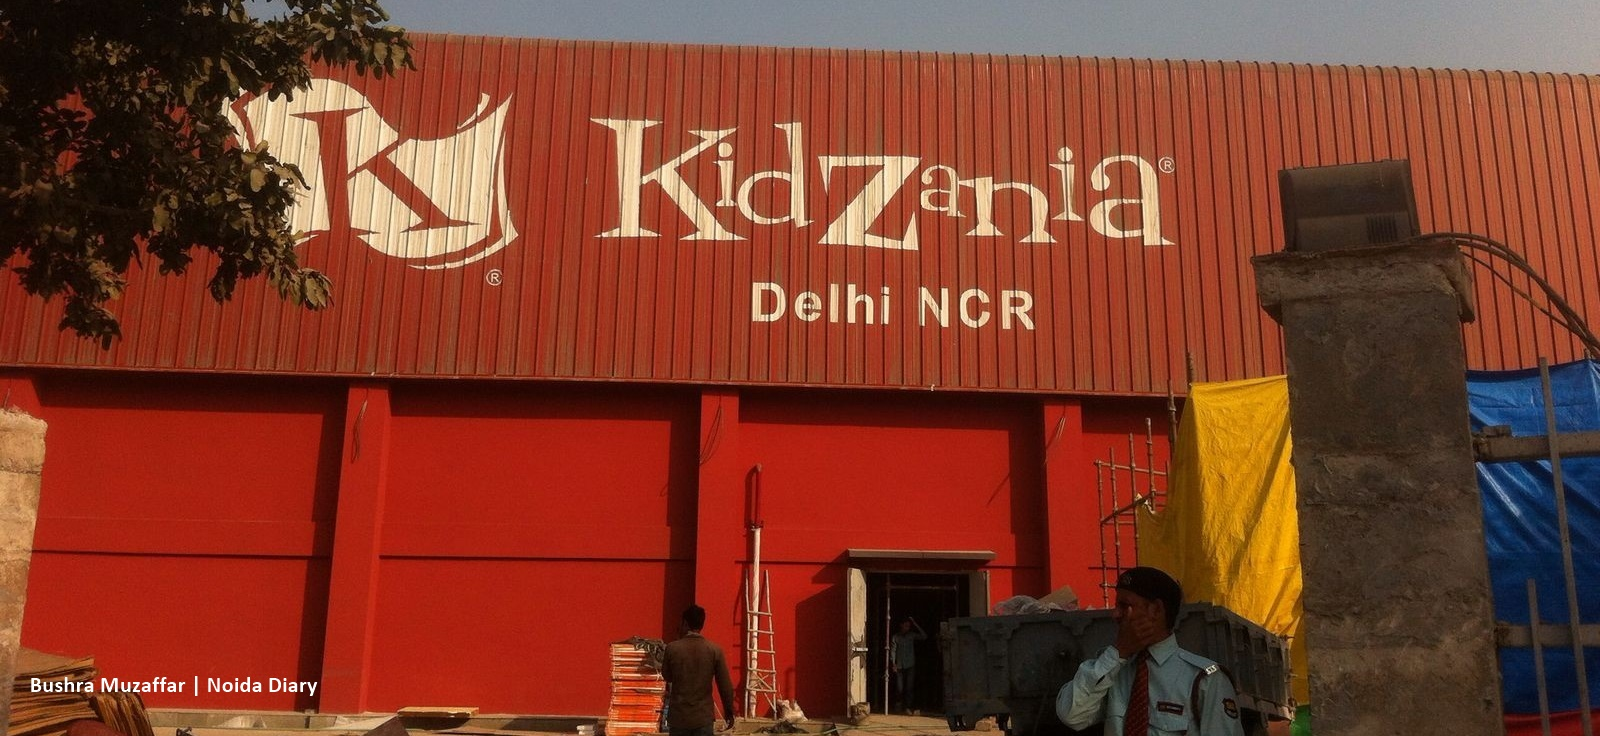 Kidzania – A City of Adventures for Kids in Noida